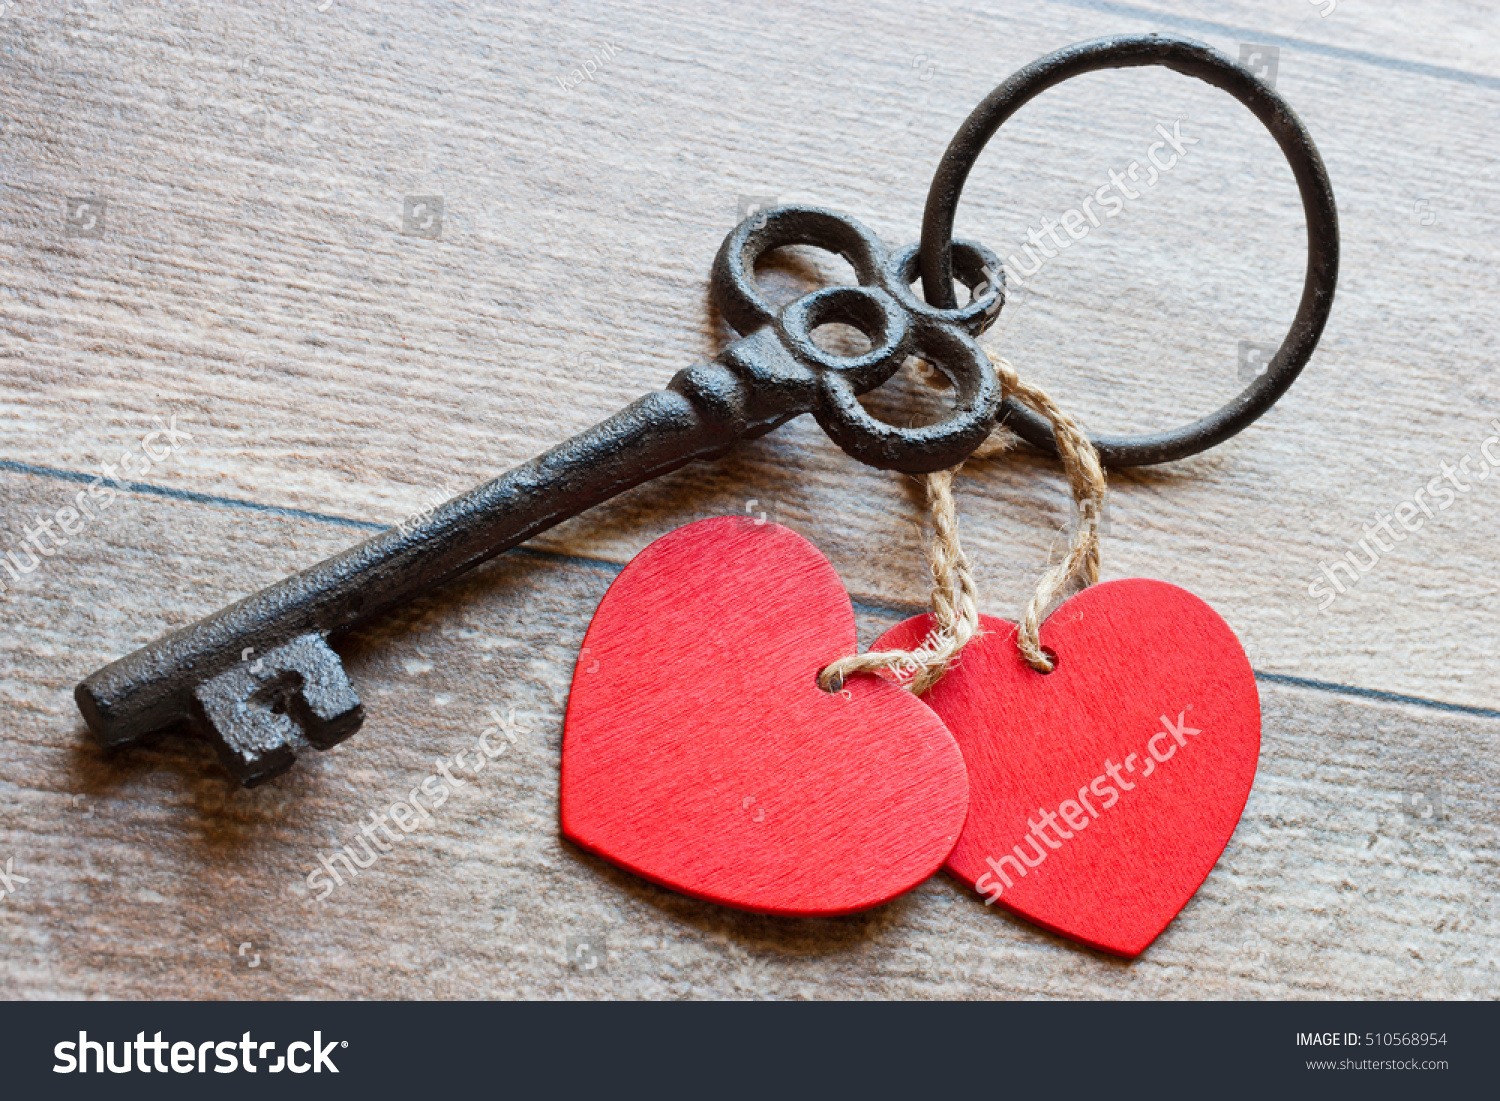 Key two hearts symbol love on stock photo 510568954 shutterstock key with two hearts as a symbol of love on the wooden background key of biocorpaavc Images